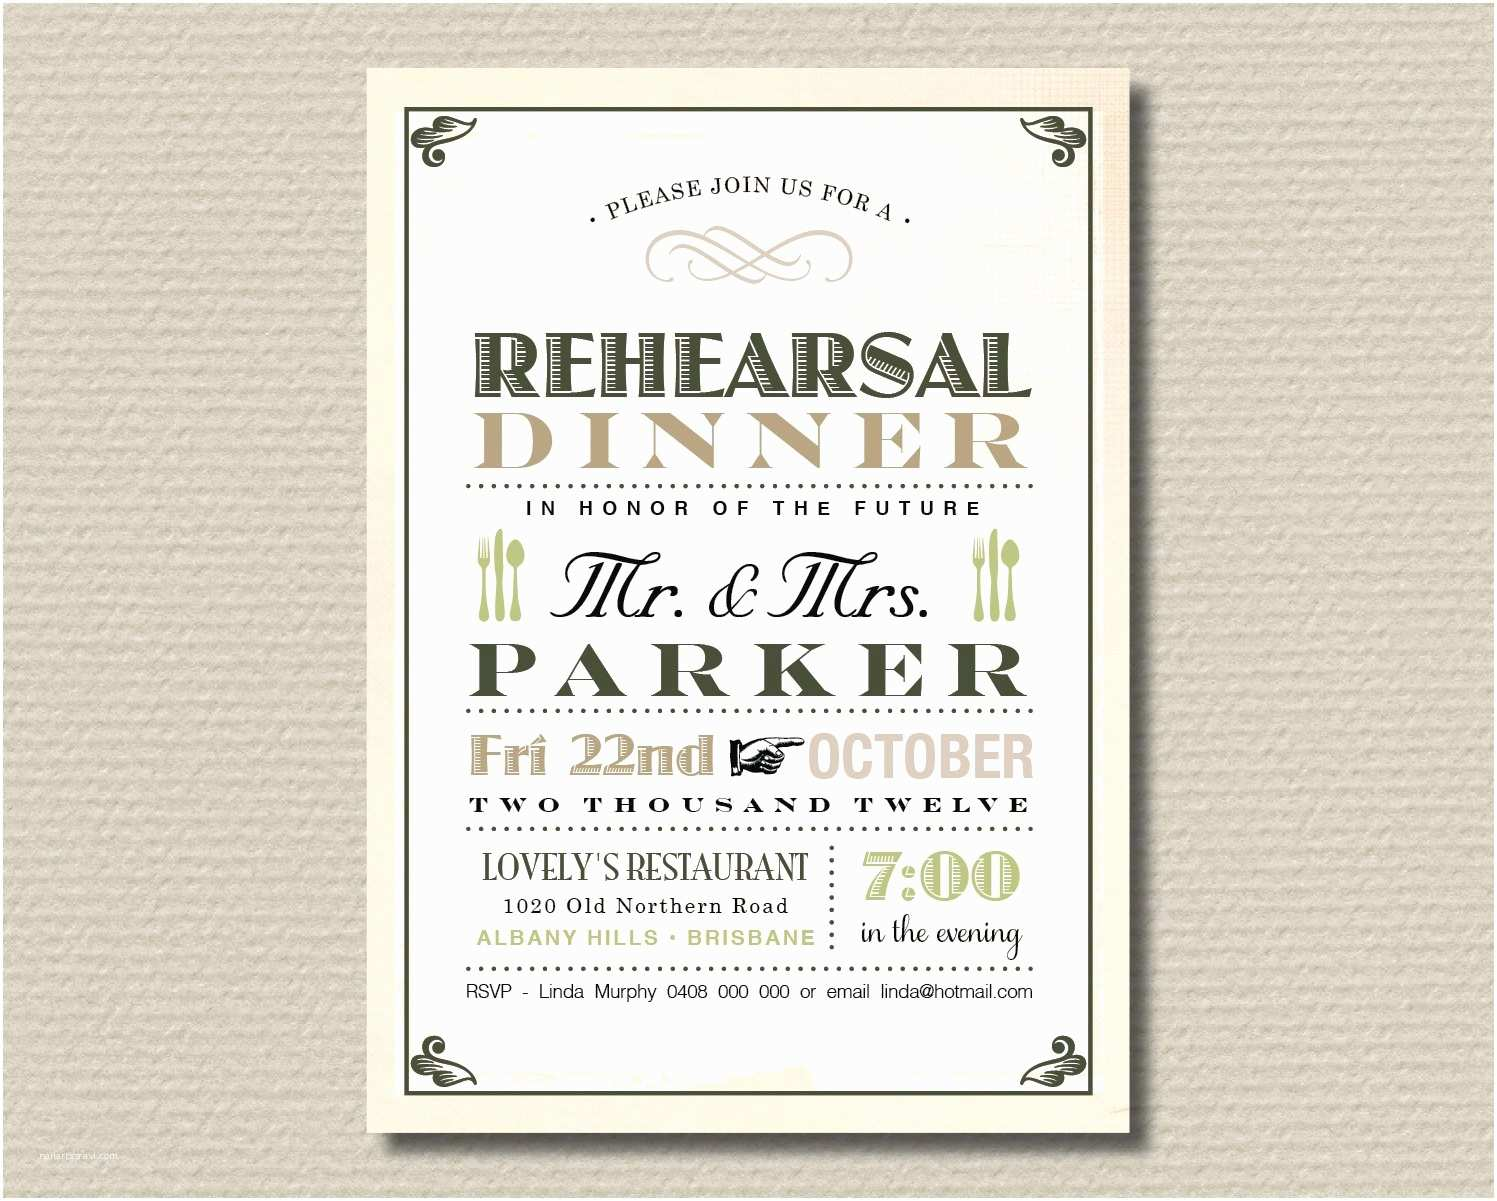 Corporate Party Invitation Wording Ideas Corporate Dinner Invitation Wording